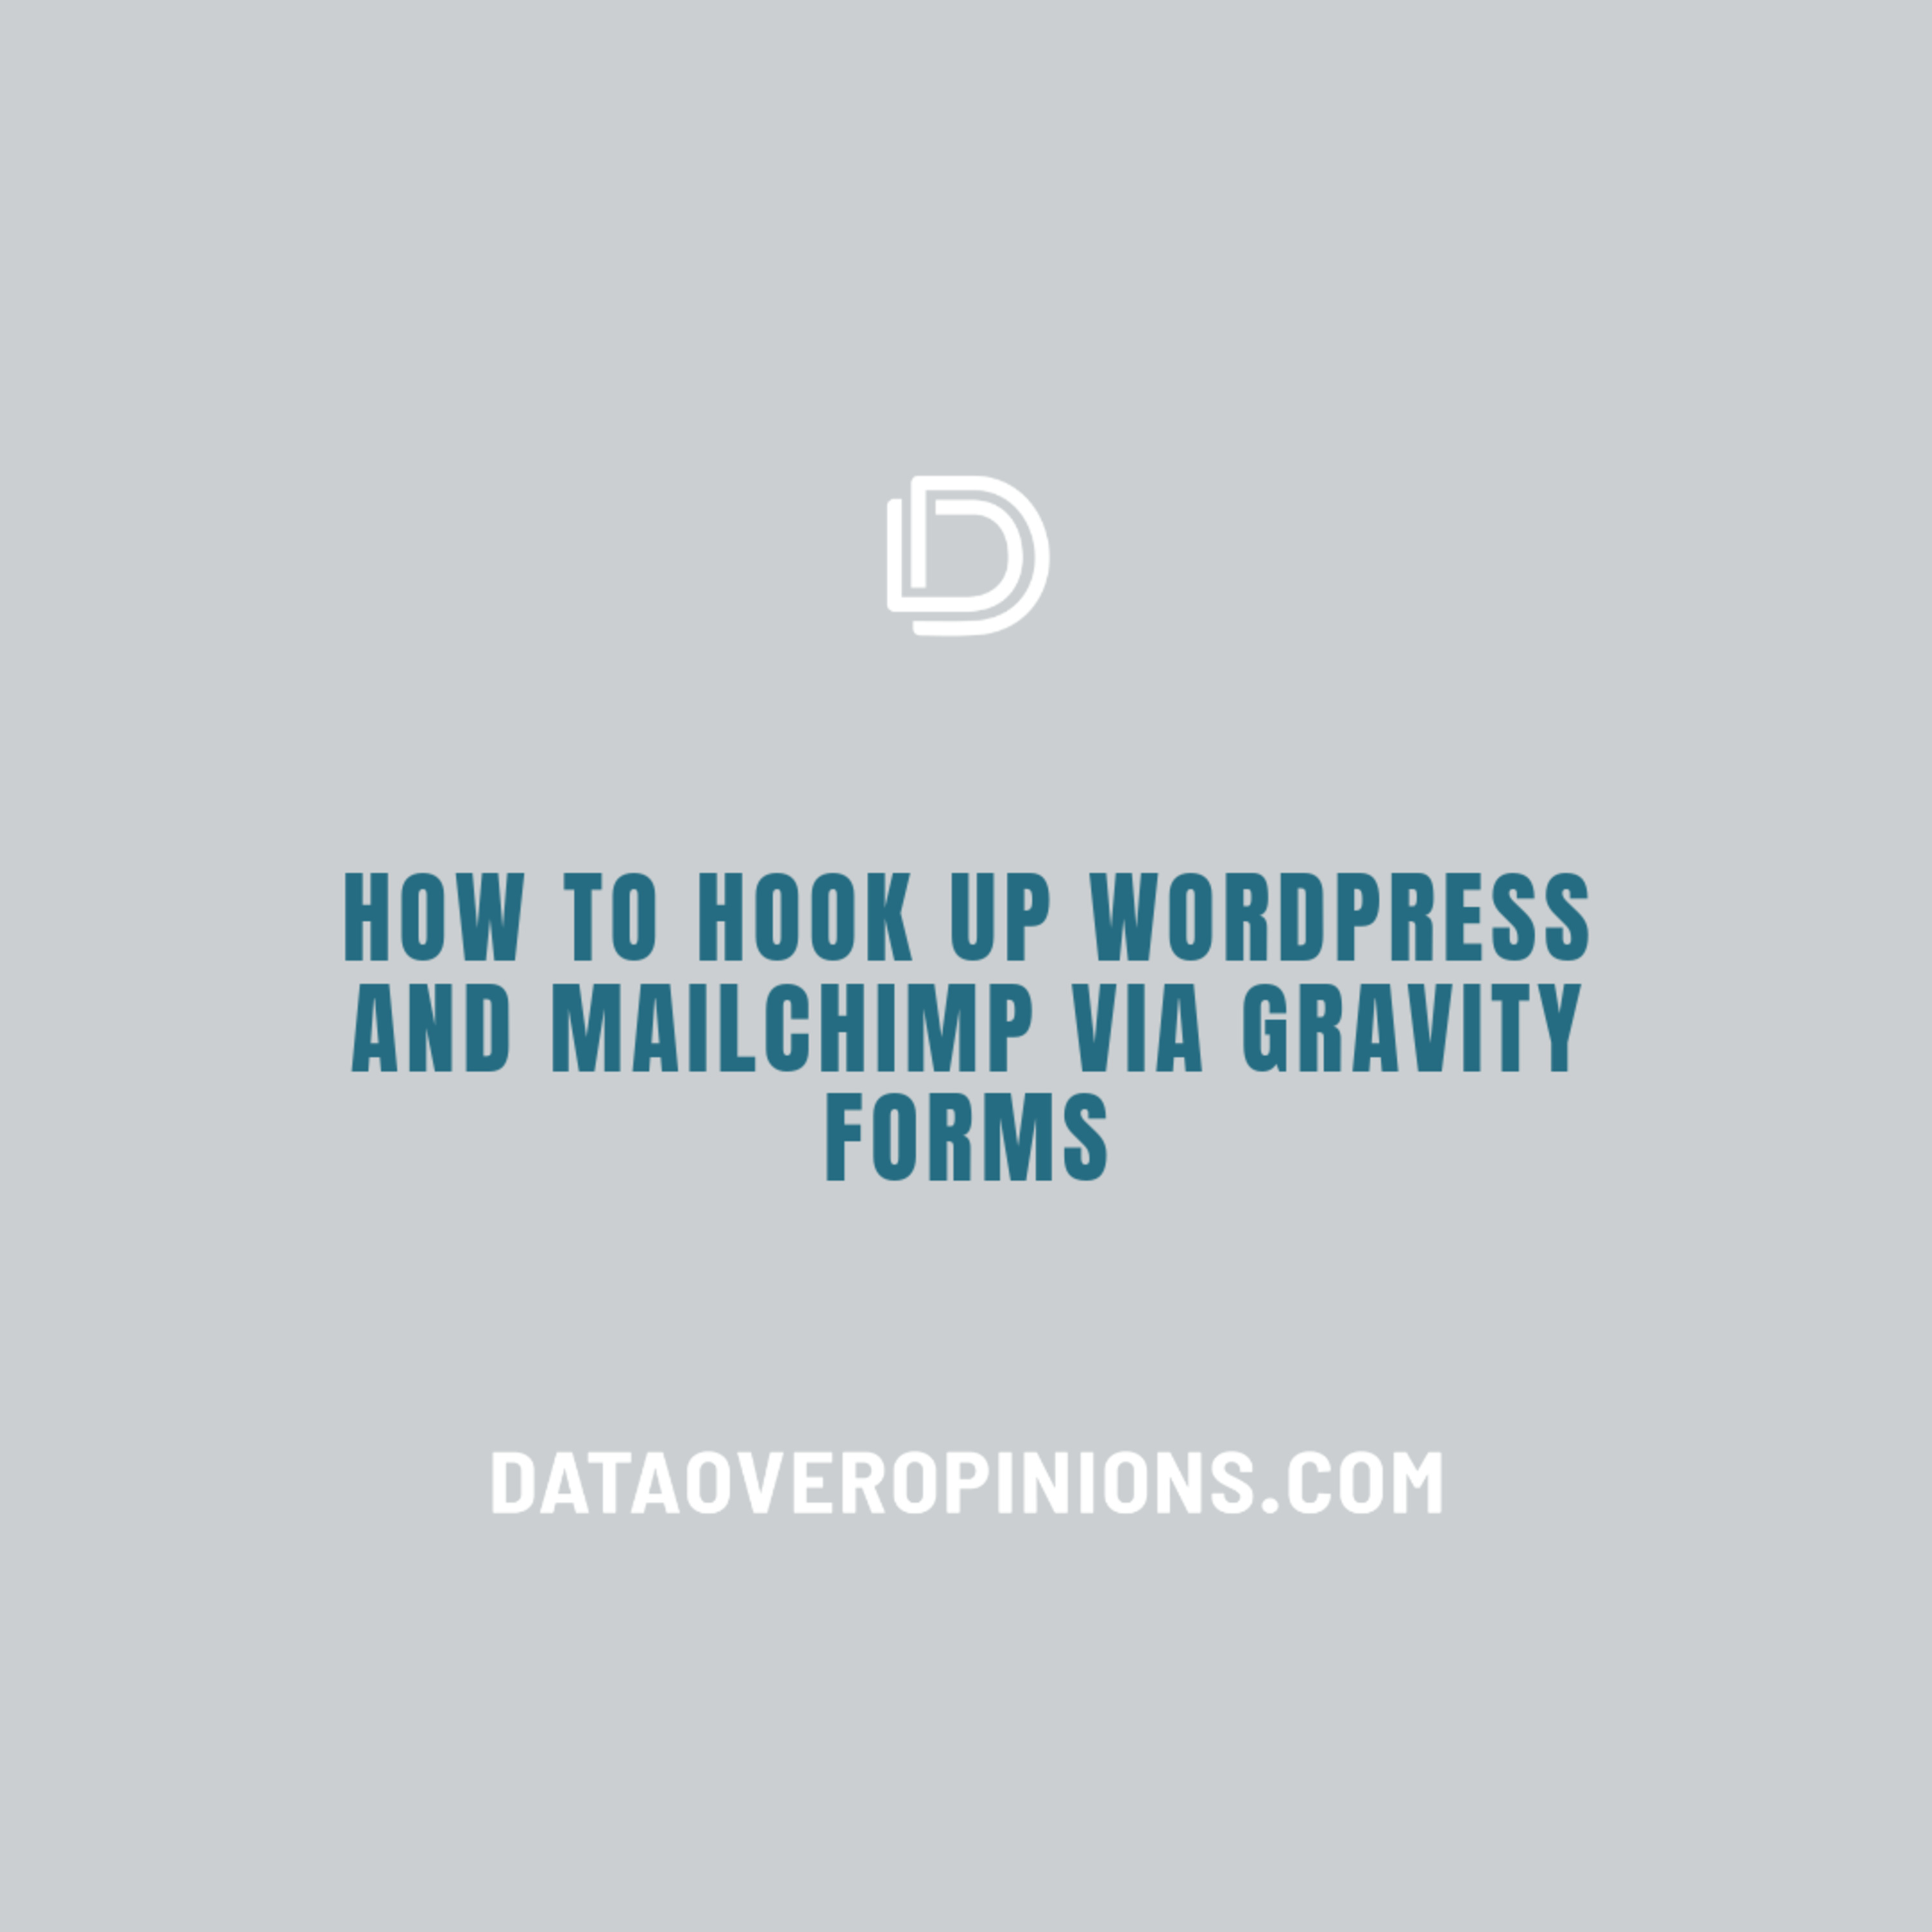 Episode 210: How To Hook Up WordPress and Mailchimp via Gravity Forms - Data Driven Daily Tip 309